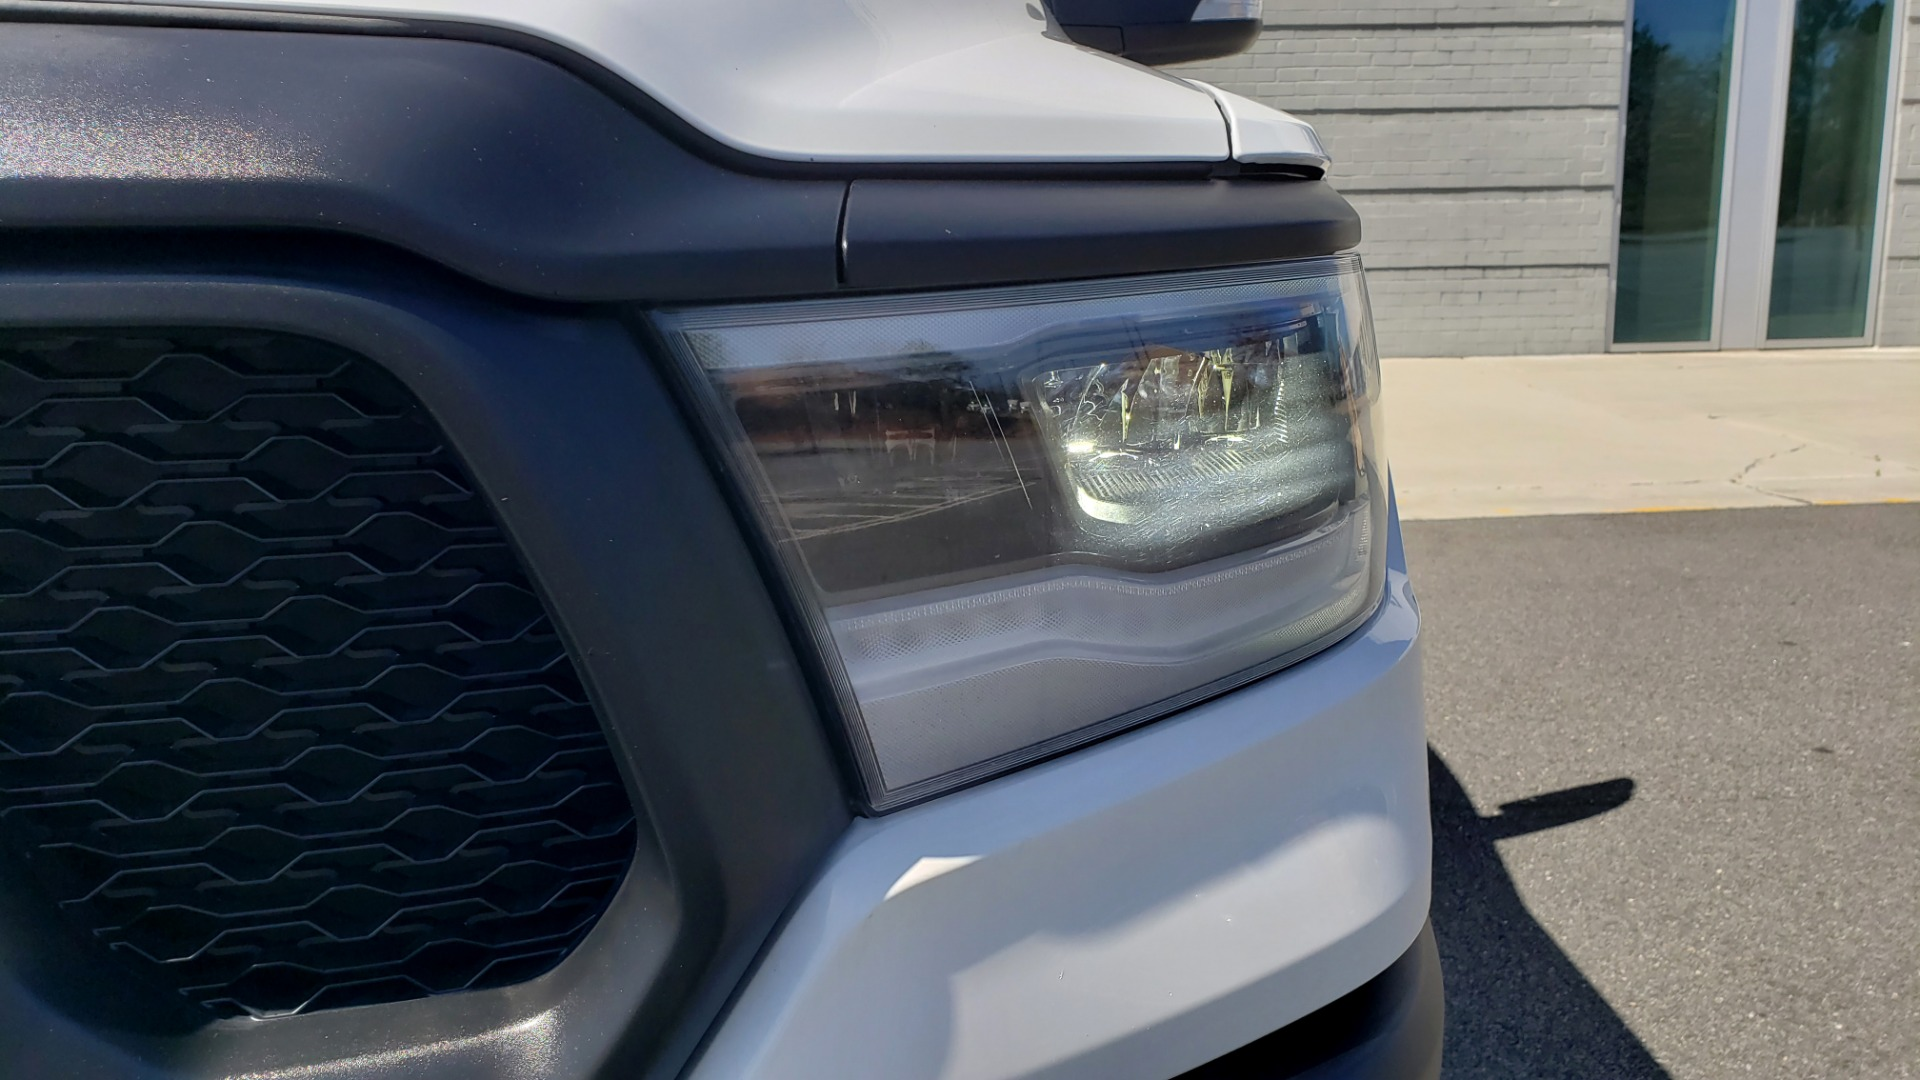 Used 2019 Ram 1500 REBEL CREWCAB 4X4 / 5.7L V8 HEMI / 8-SPD AUTO / REARVIEW for sale Sold at Formula Imports in Charlotte NC 28227 23